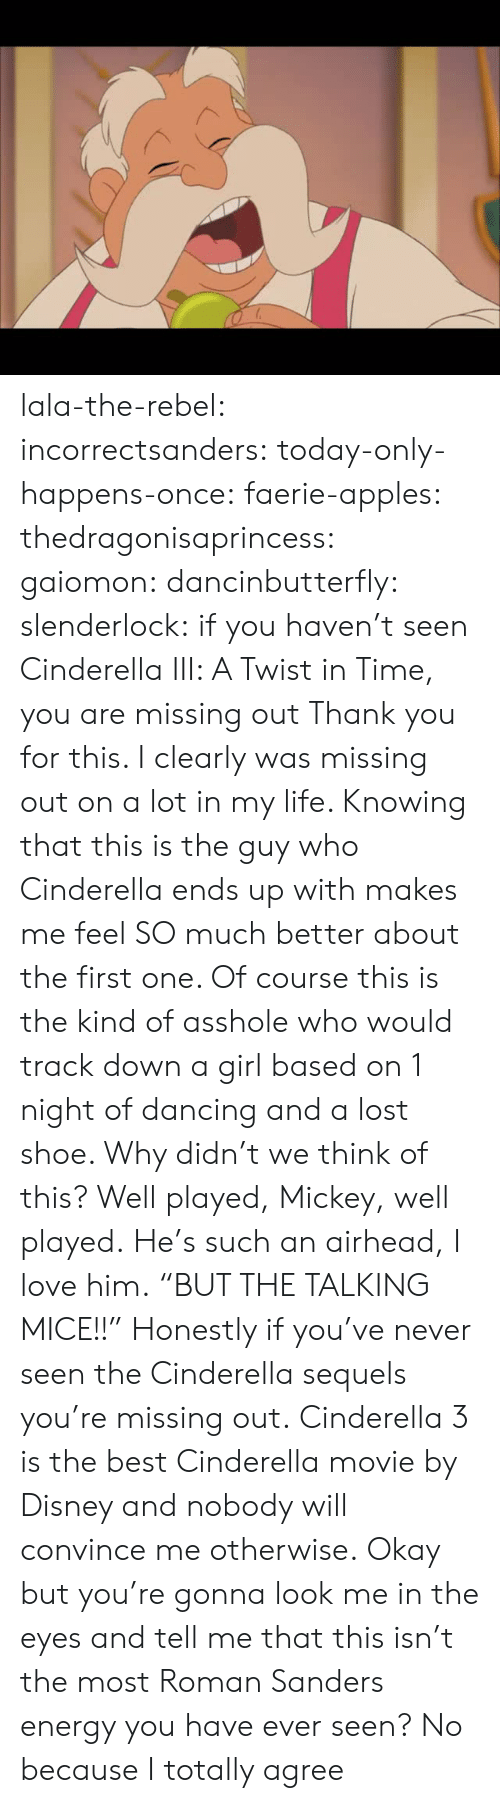 "well played: lala-the-rebel:  incorrectsanders:   today-only-happens-once:   faerie-apples:  thedragonisaprincess:  gaiomon:  dancinbutterfly:  slenderlock: if you haven't seen Cinderella III: A Twist in Time, you are missing out Thank you for this. I clearly was missing out on a lot in my life. Knowing that this is the guy who Cinderella ends up with makes me feel SO much better about the first one. Of course this is the kind of asshole who would track down a girl based on 1 night of dancing and a lost shoe. Why didn't we think of this? Well played, Mickey, well played.  He's such an airhead, I love him.  ""BUT THE TALKING MICE!!""  Honestly if you've never seen the Cinderella sequels you're missing out.  Cinderella 3 is the best Cinderella movie by Disney and nobody will convince me otherwise.   Okay but you're gonna look me in the eyes and tell me that this isn't the most Roman Sanders energy you have ever seen?    No because I totally agree"